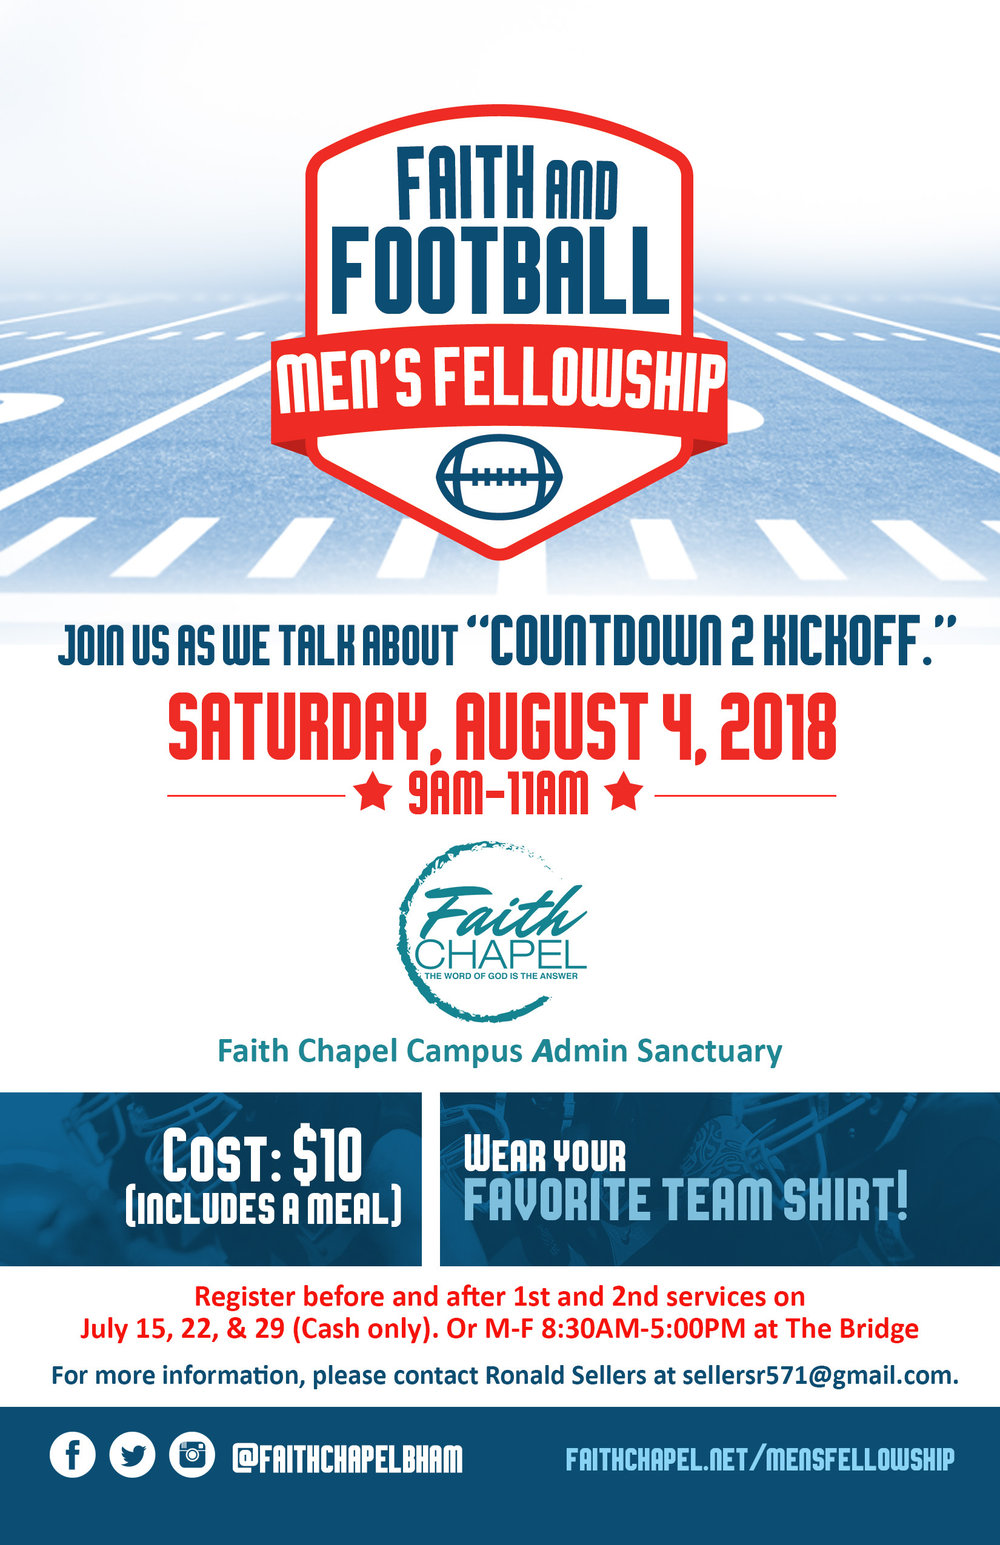 faithchapel_faith&Football.jpg